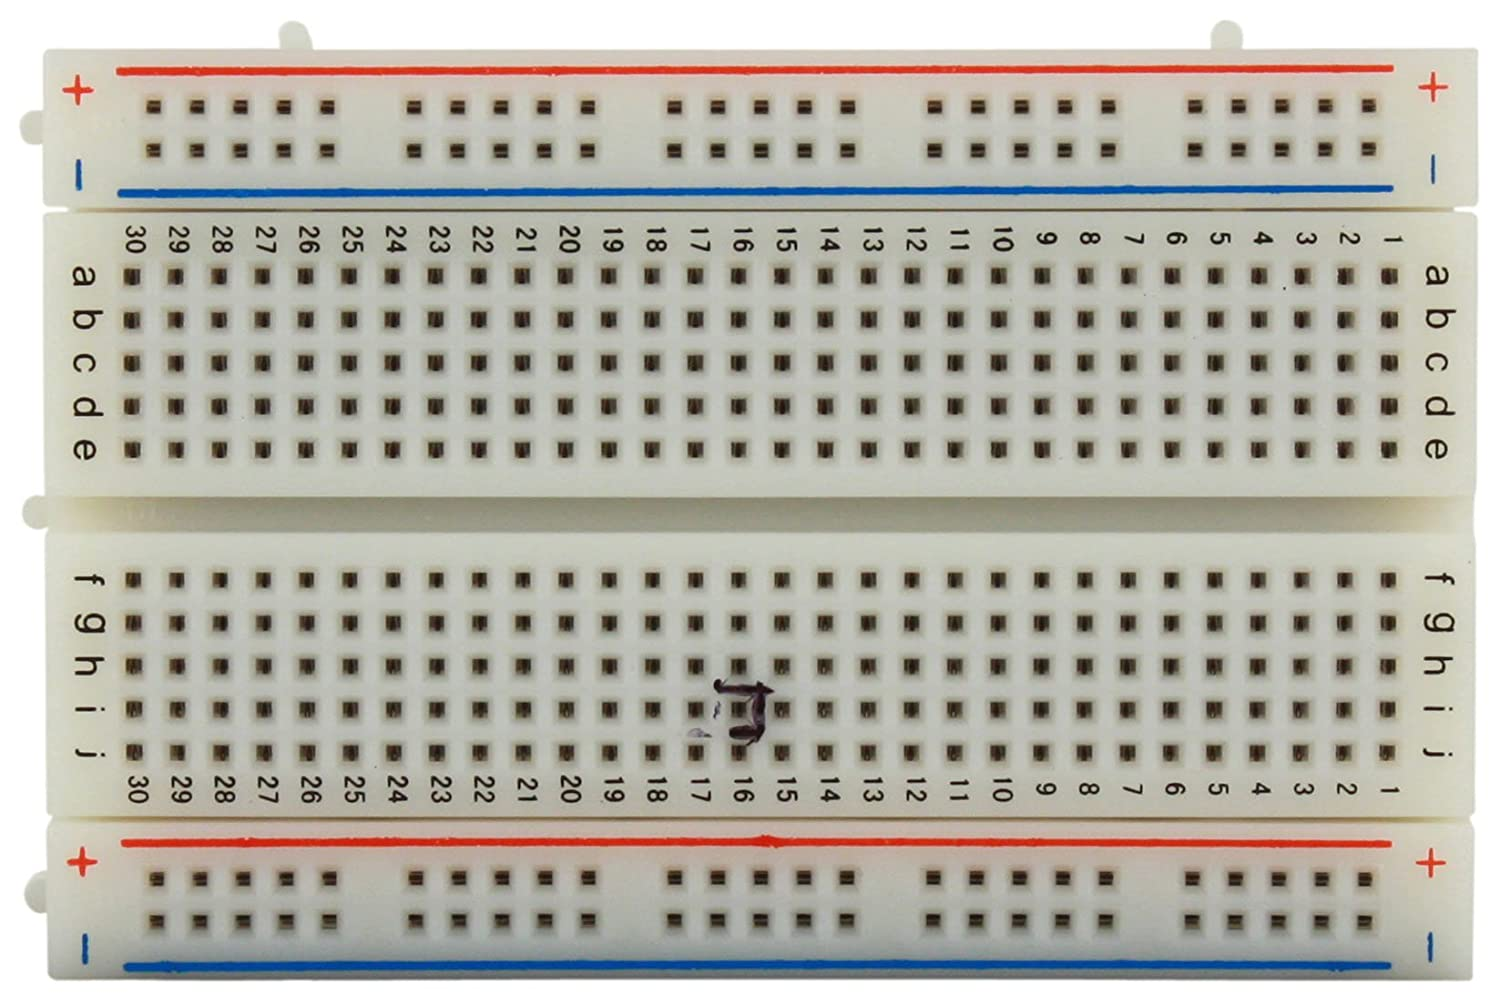 Discount Global Specialties GS-400 Solderless Breadboard with Bus Strip, 400 Tie-Point, 3-19/64 Length x 1-25/64 Width Strip for sale